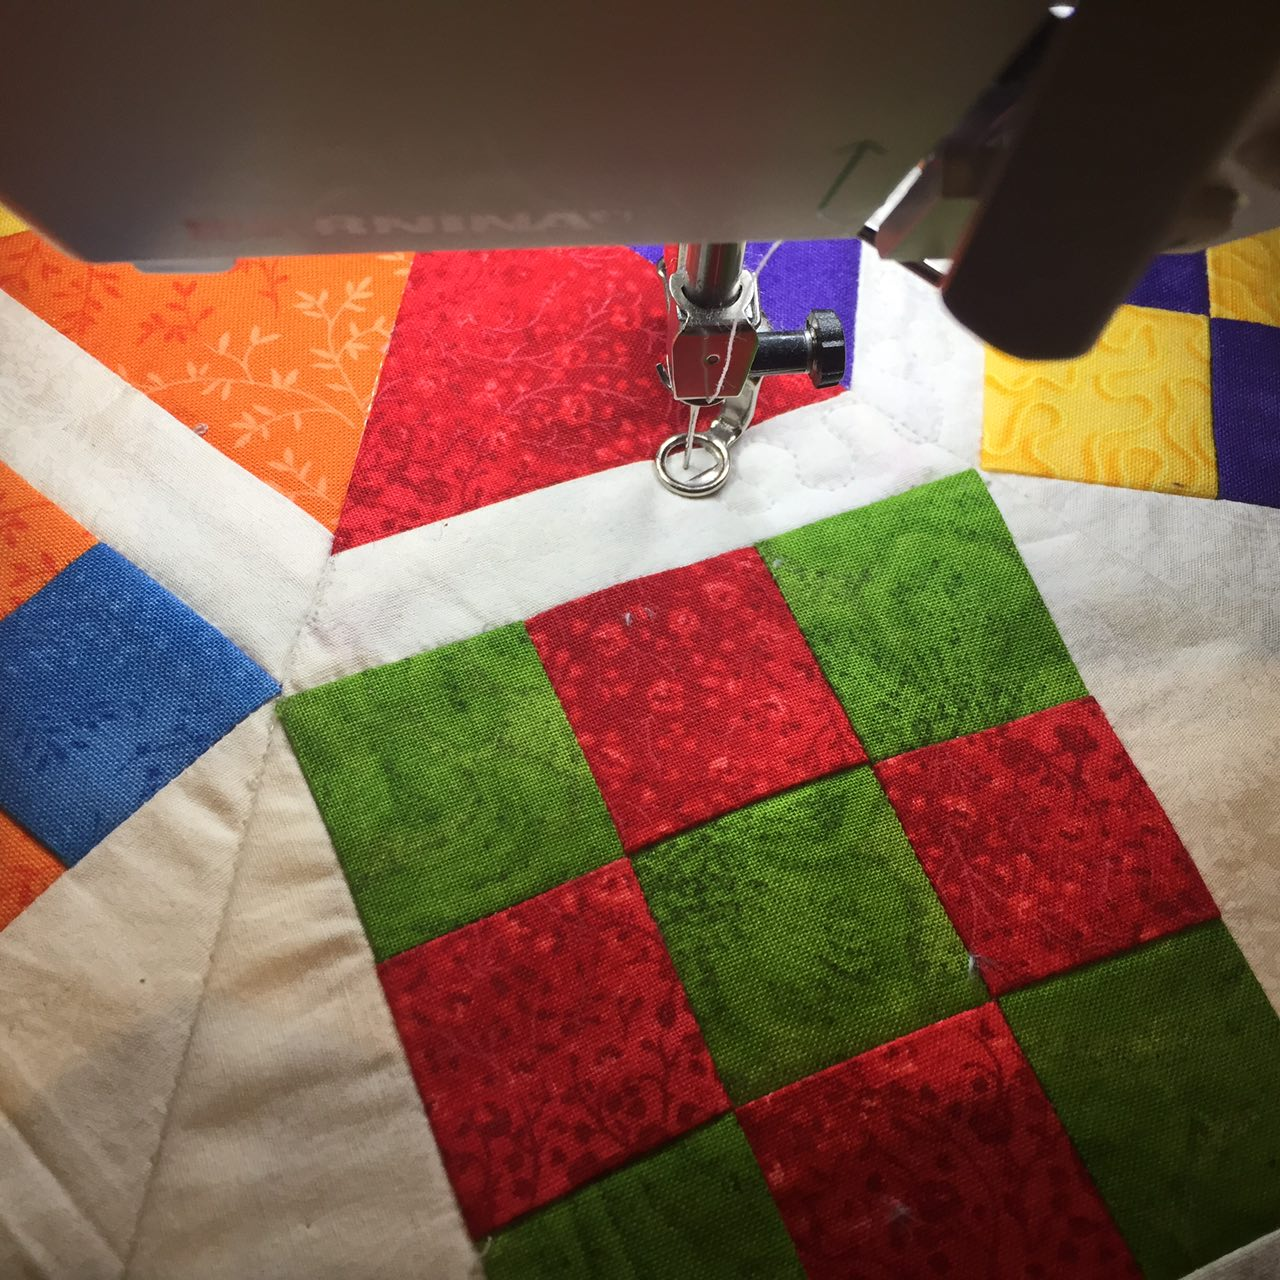 Quilting with Manije Hesaraki